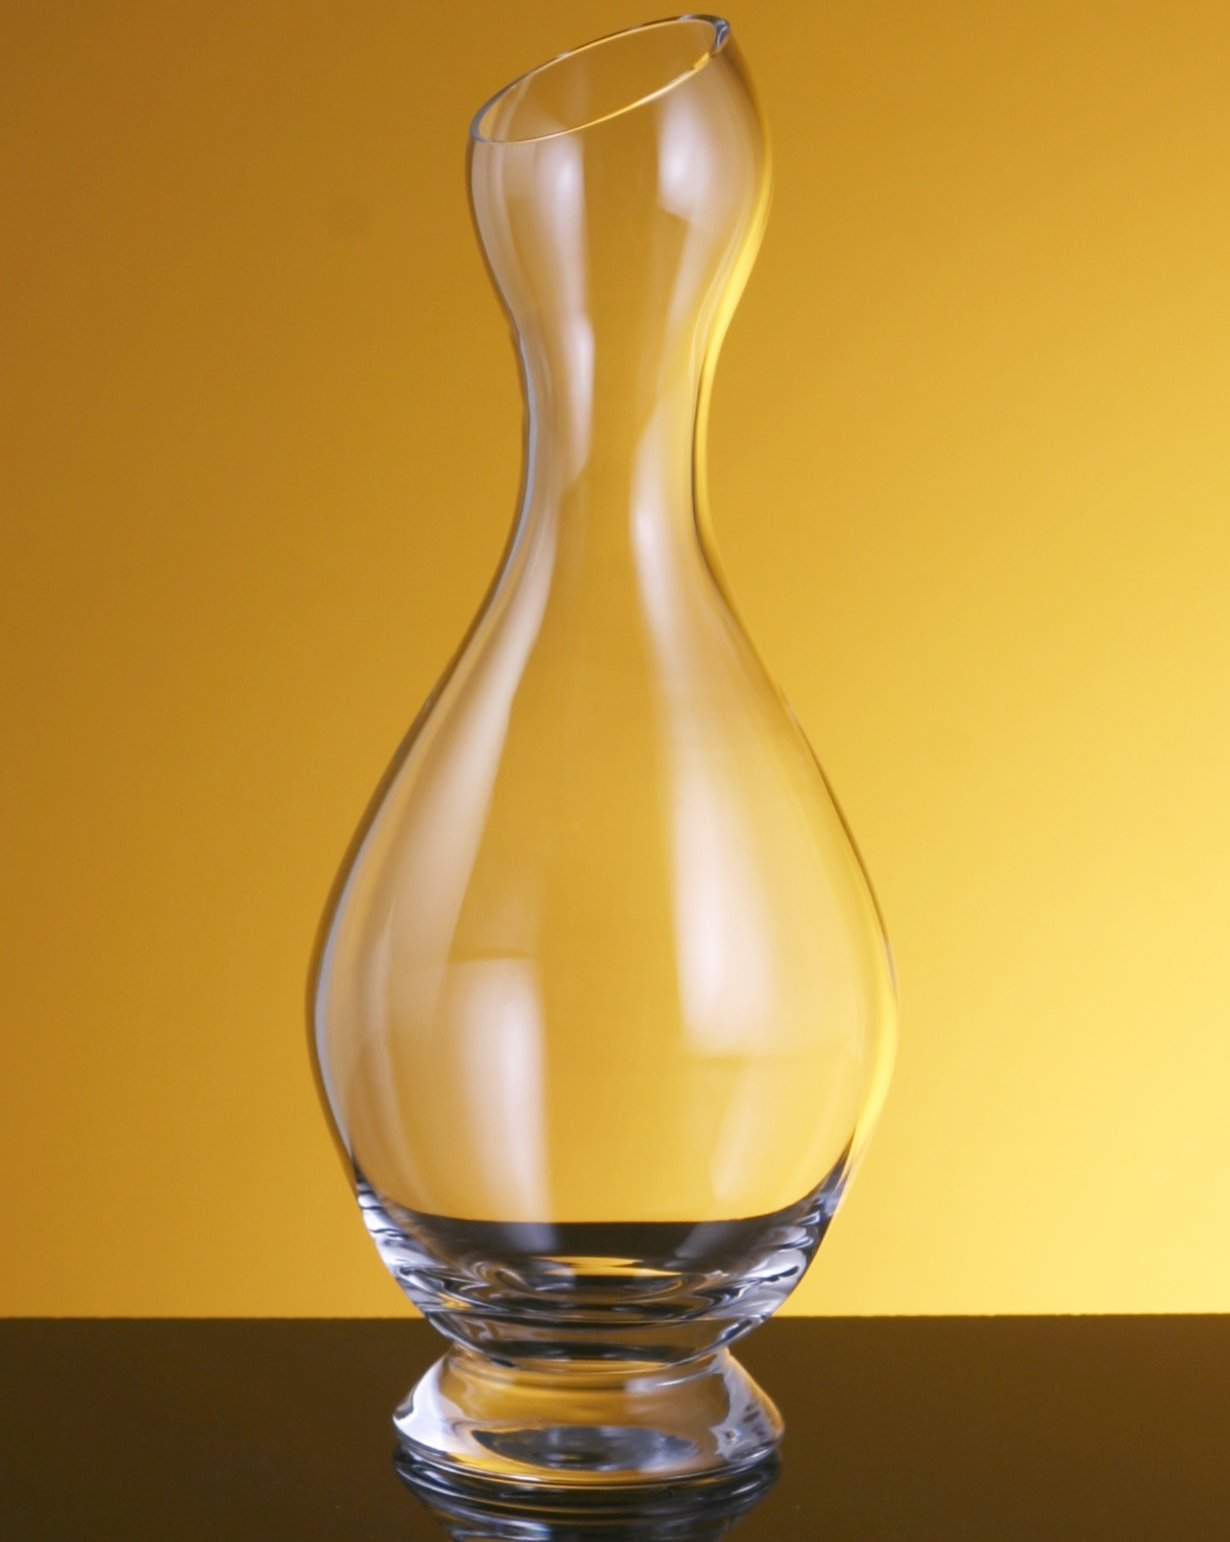 Bottega del Vino Crystal Decanter America, 750 Milliliter by Bottega del Vino